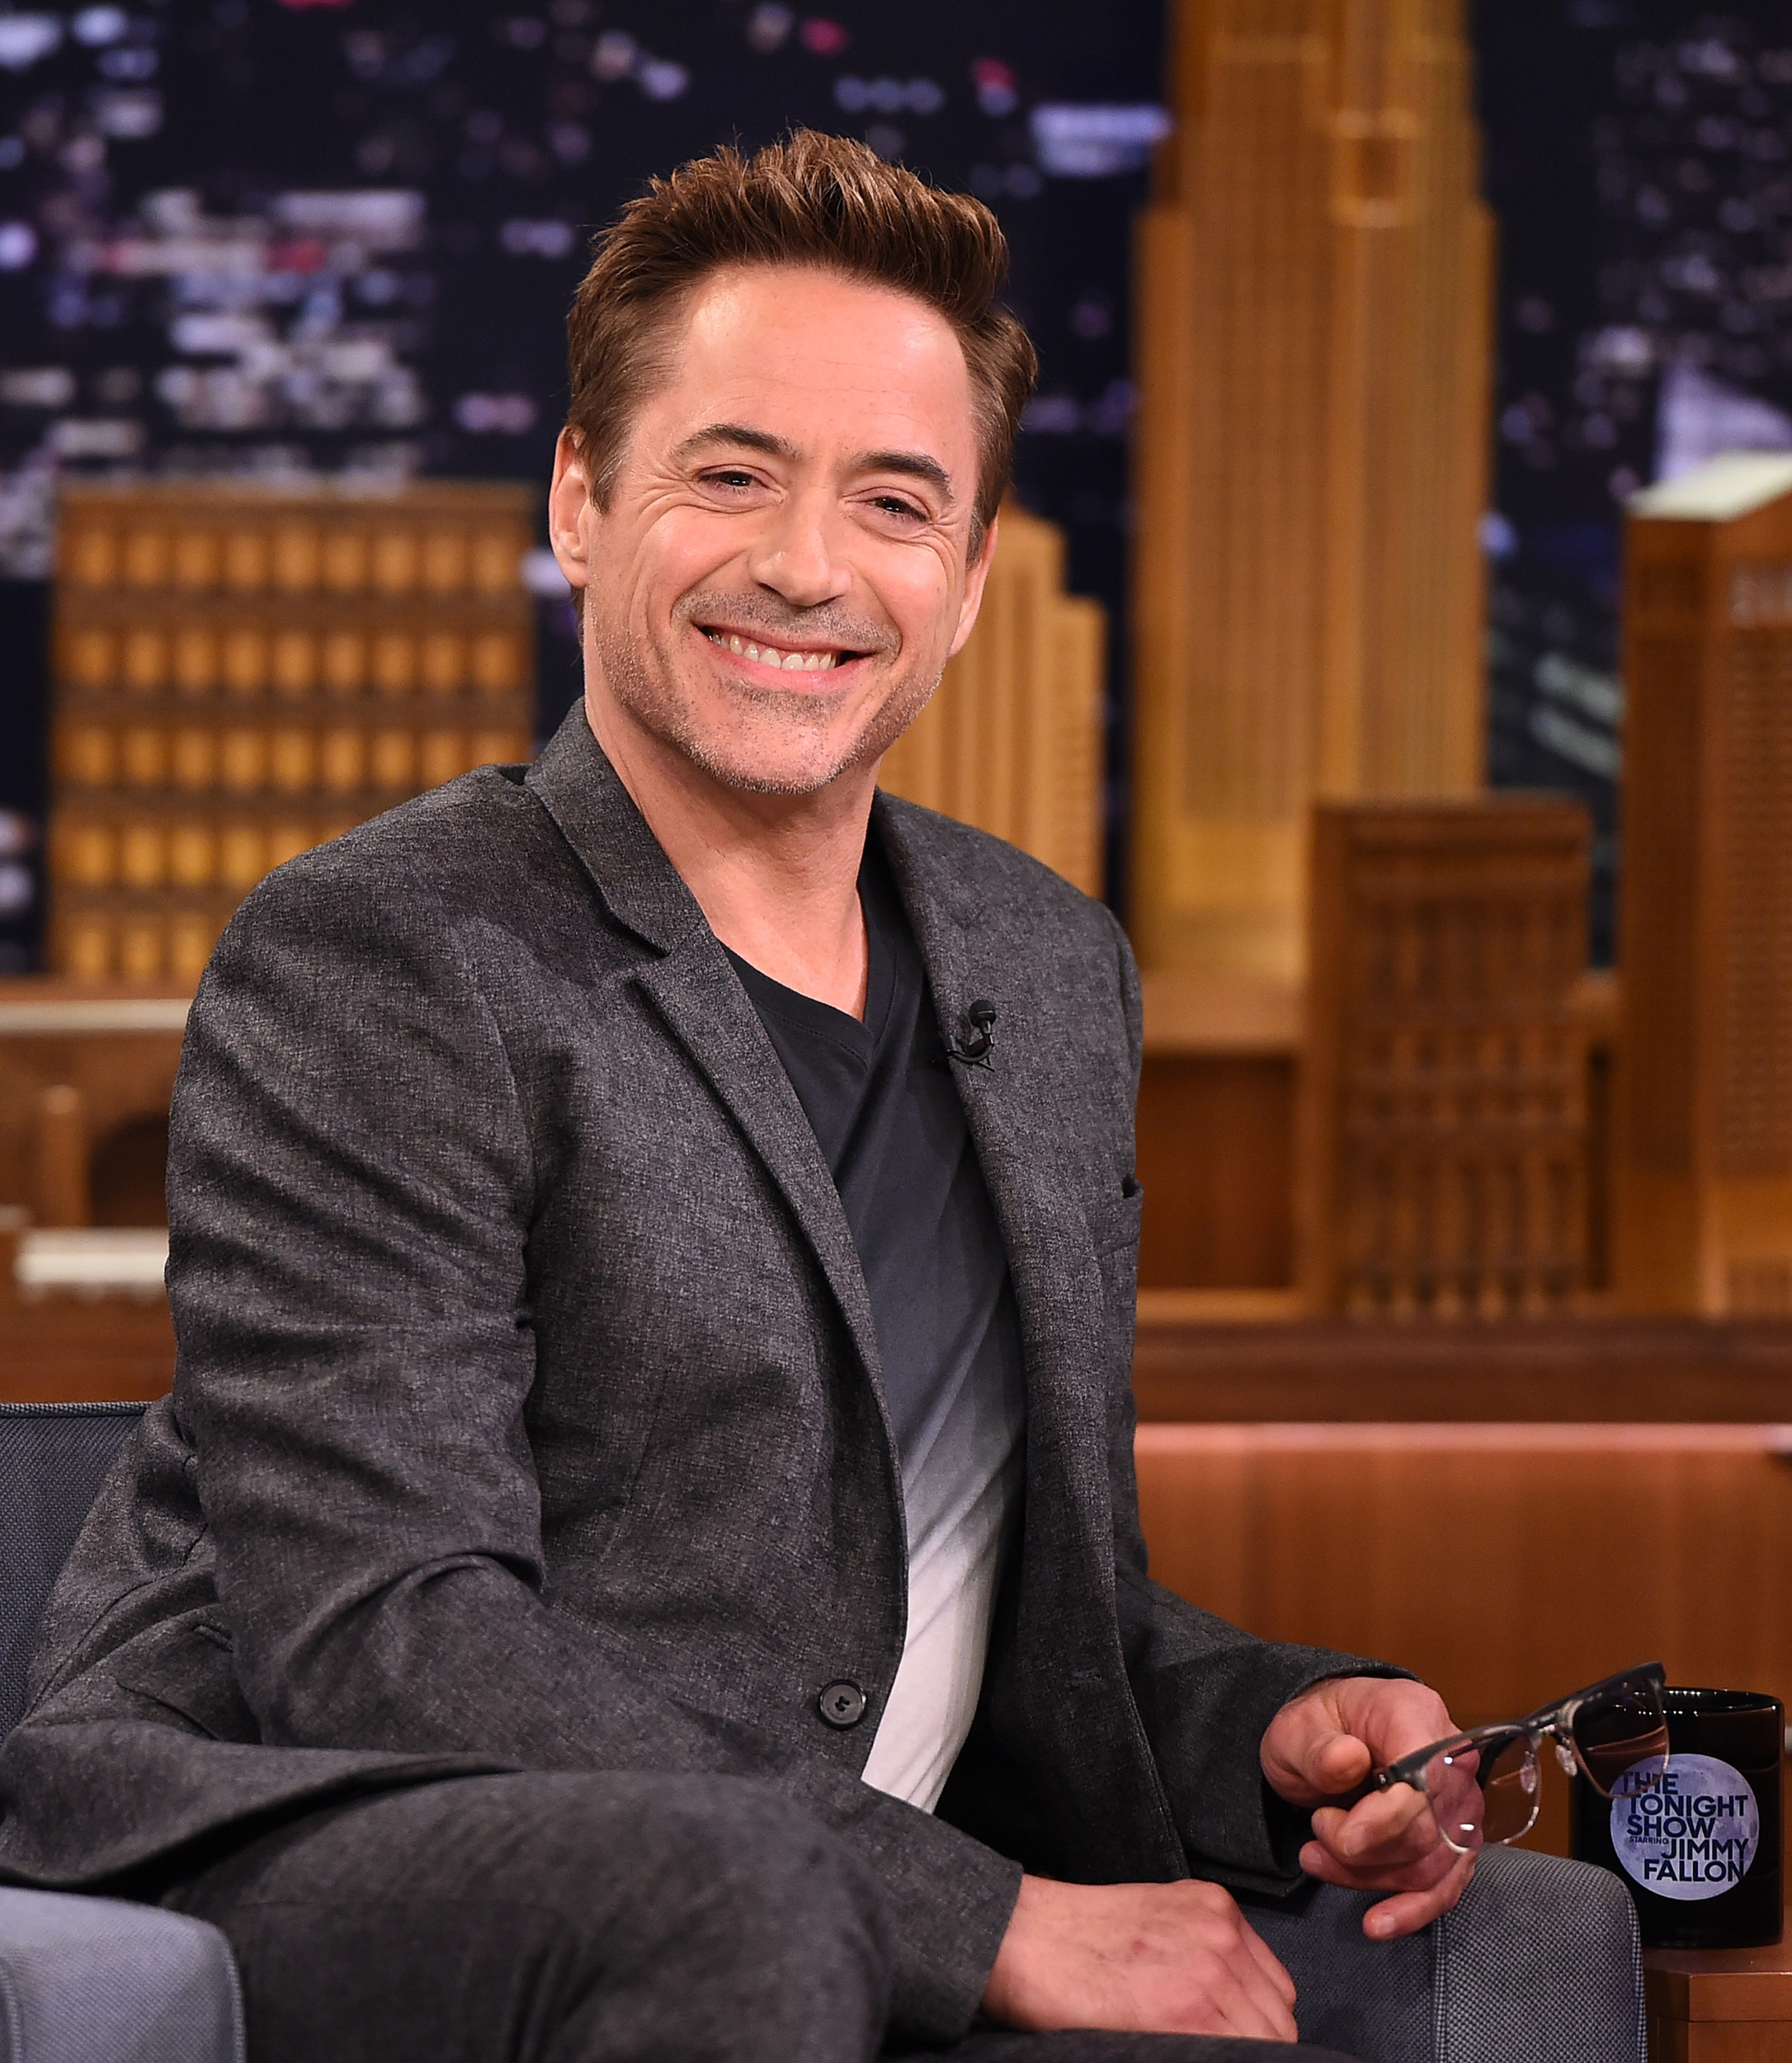 Robert Downey Sr: Robert Downey Jr. Facts: 11 Crazy Things You (Probably